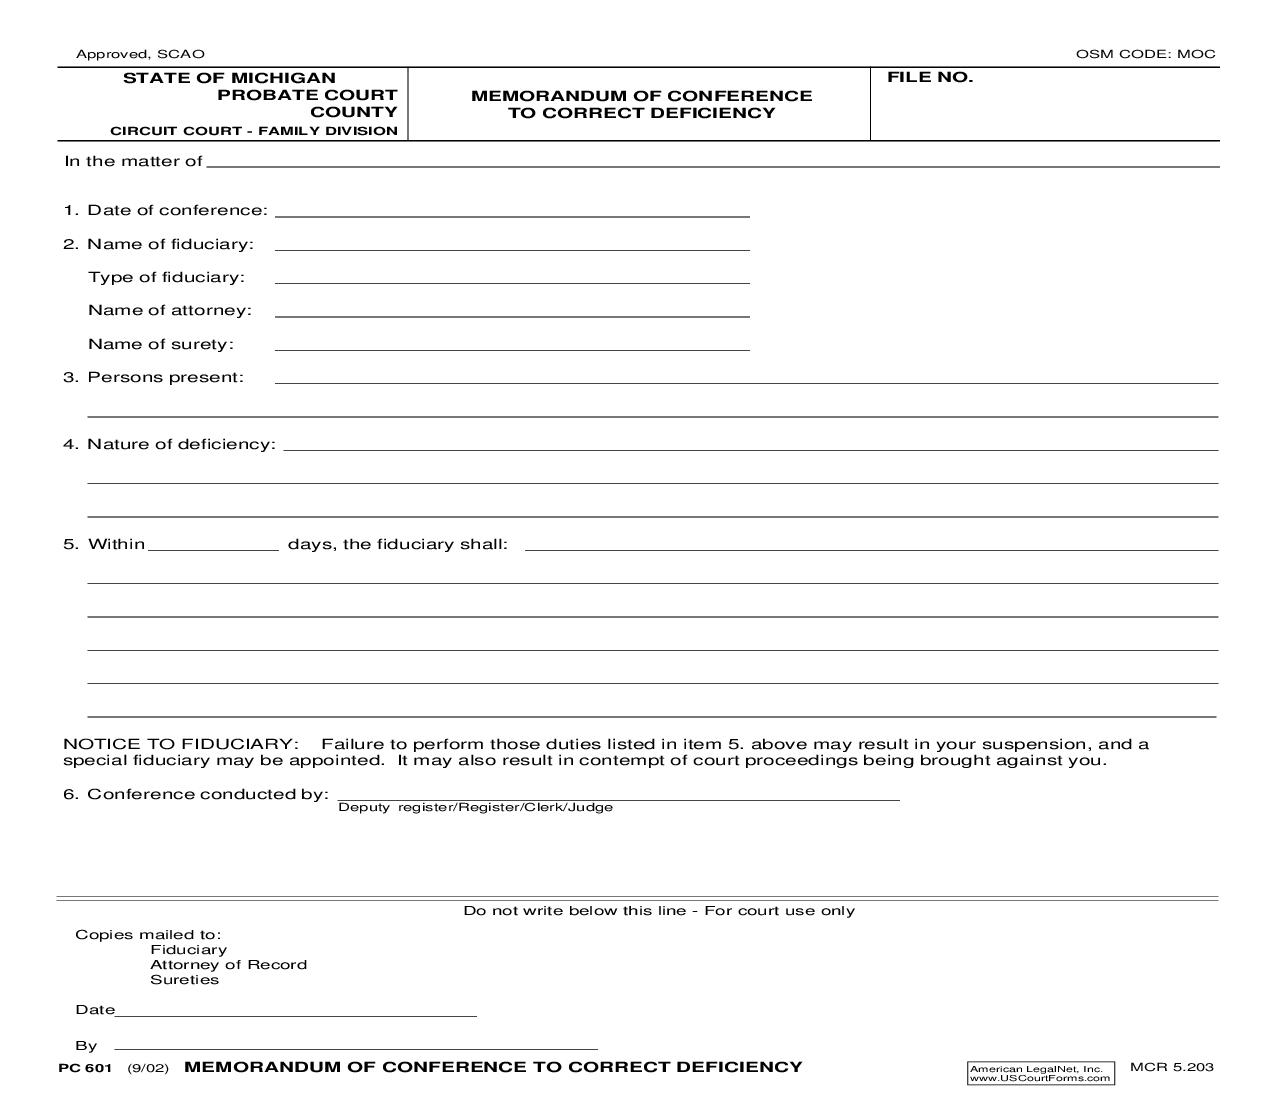 Memorandum Of Conference To Correct Deficiency {PC 601} | Pdf Fpdf Doc Docx | Michigan